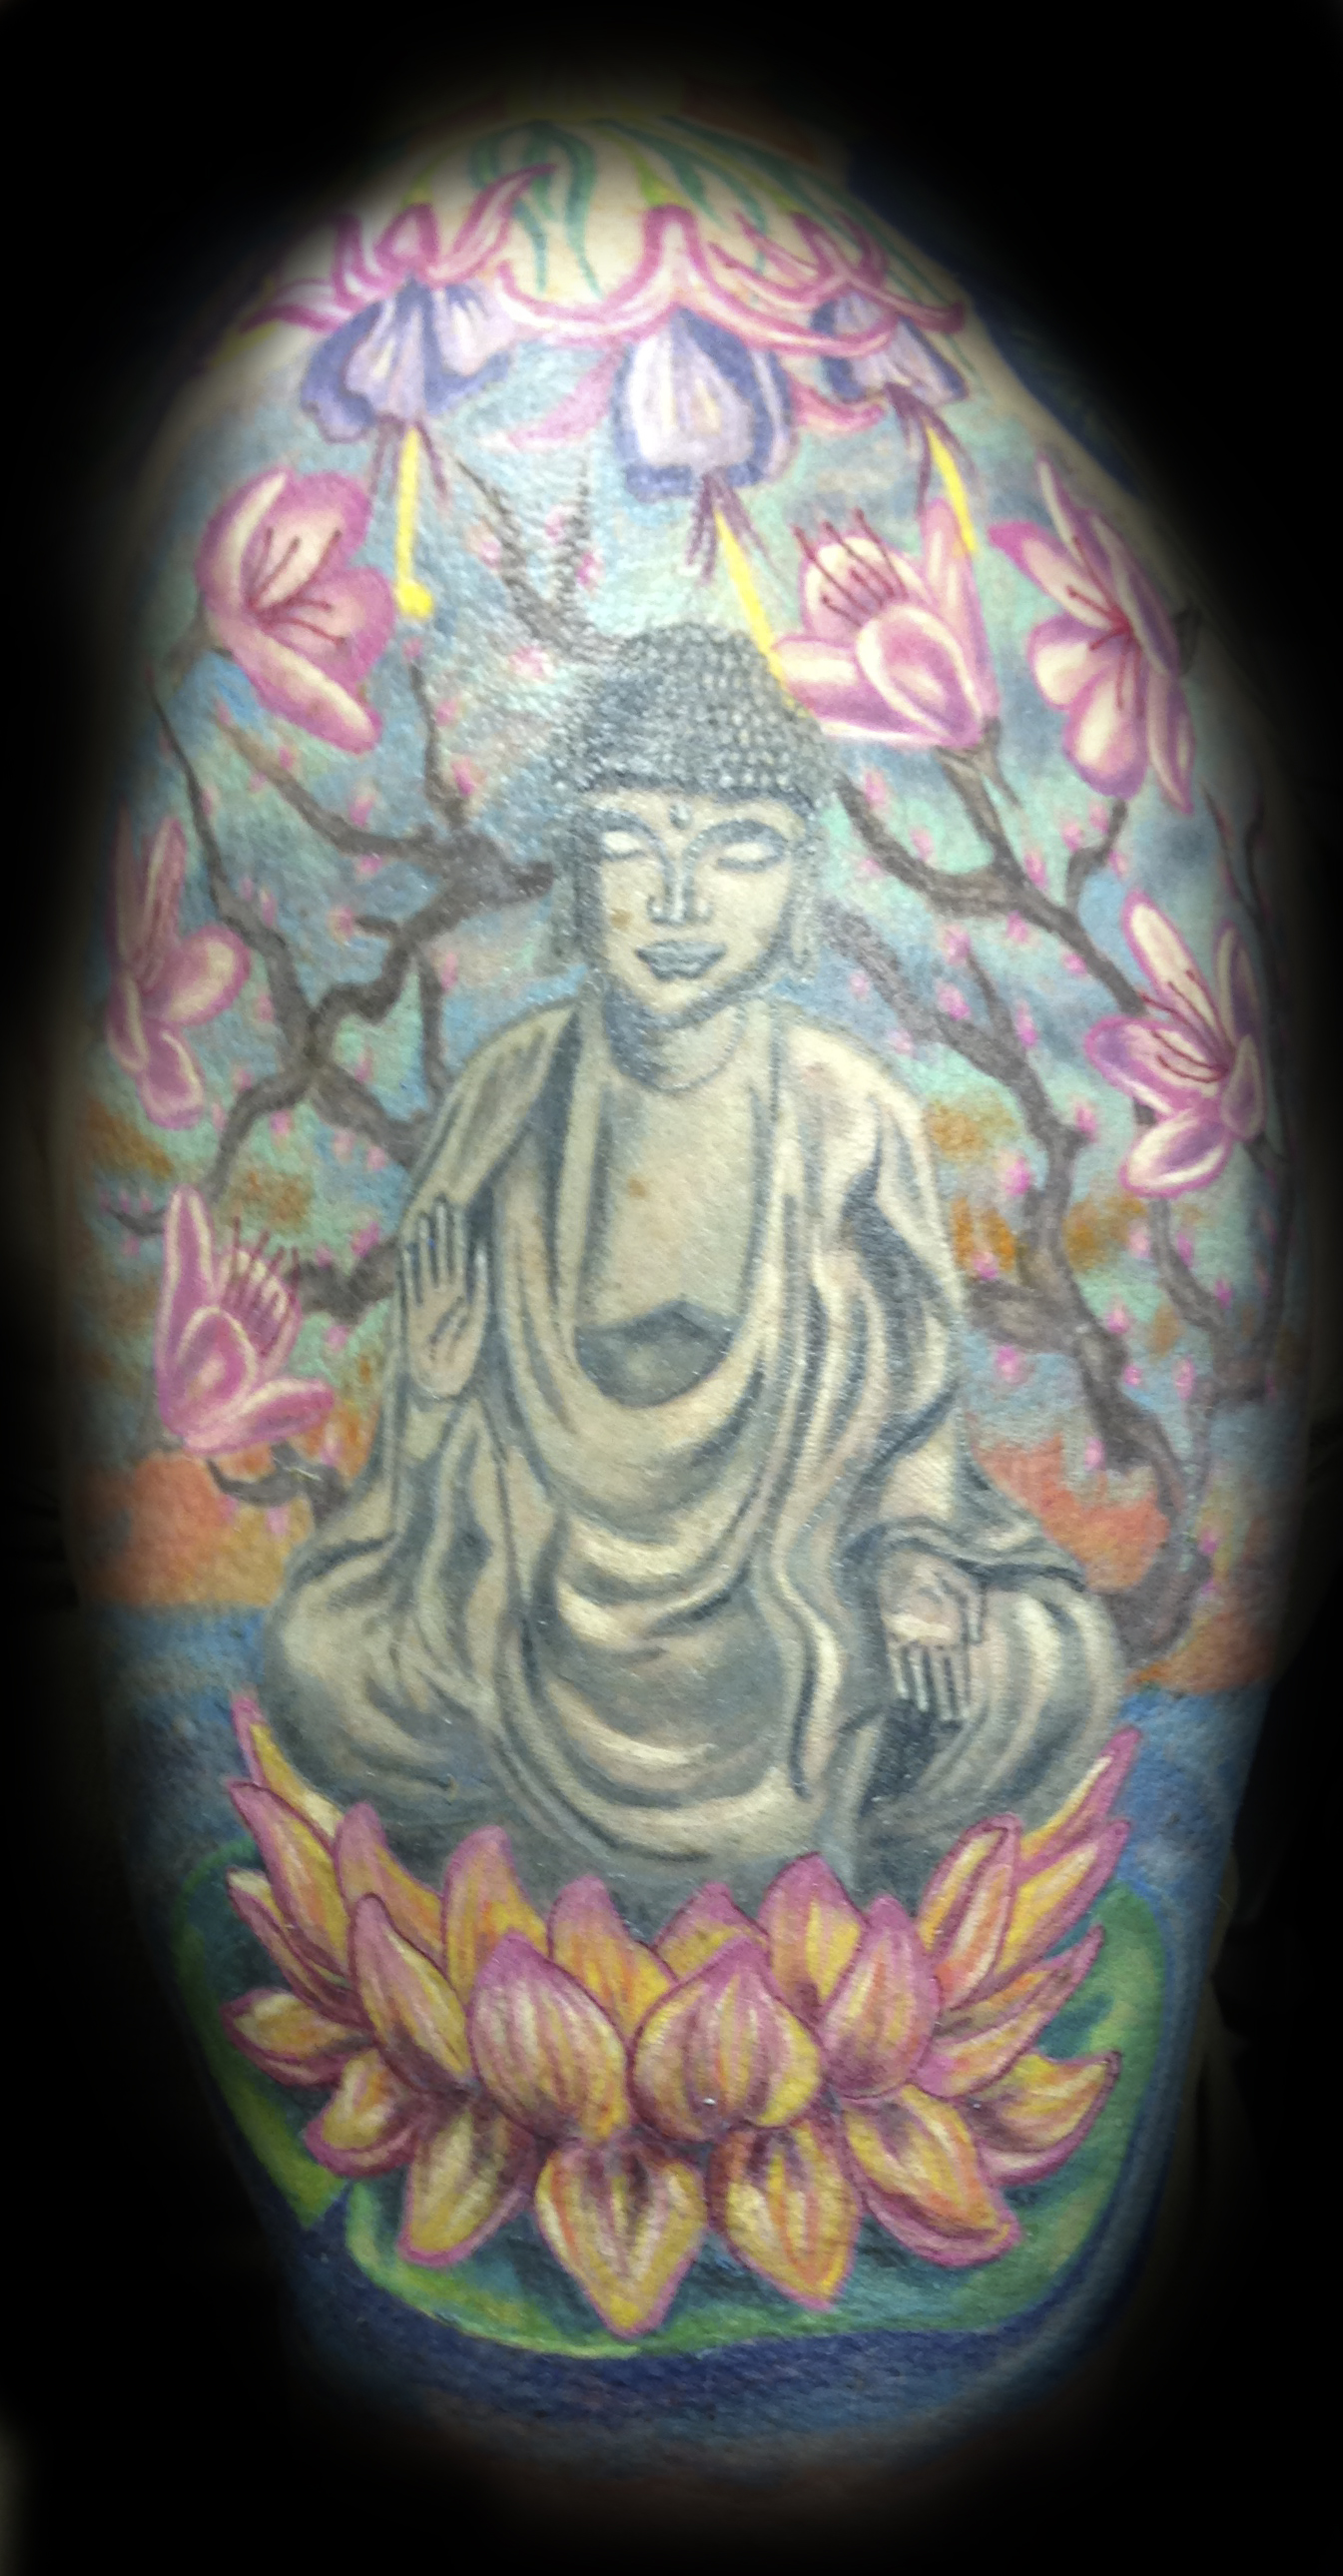 tattoo, tattoo shop, buddha